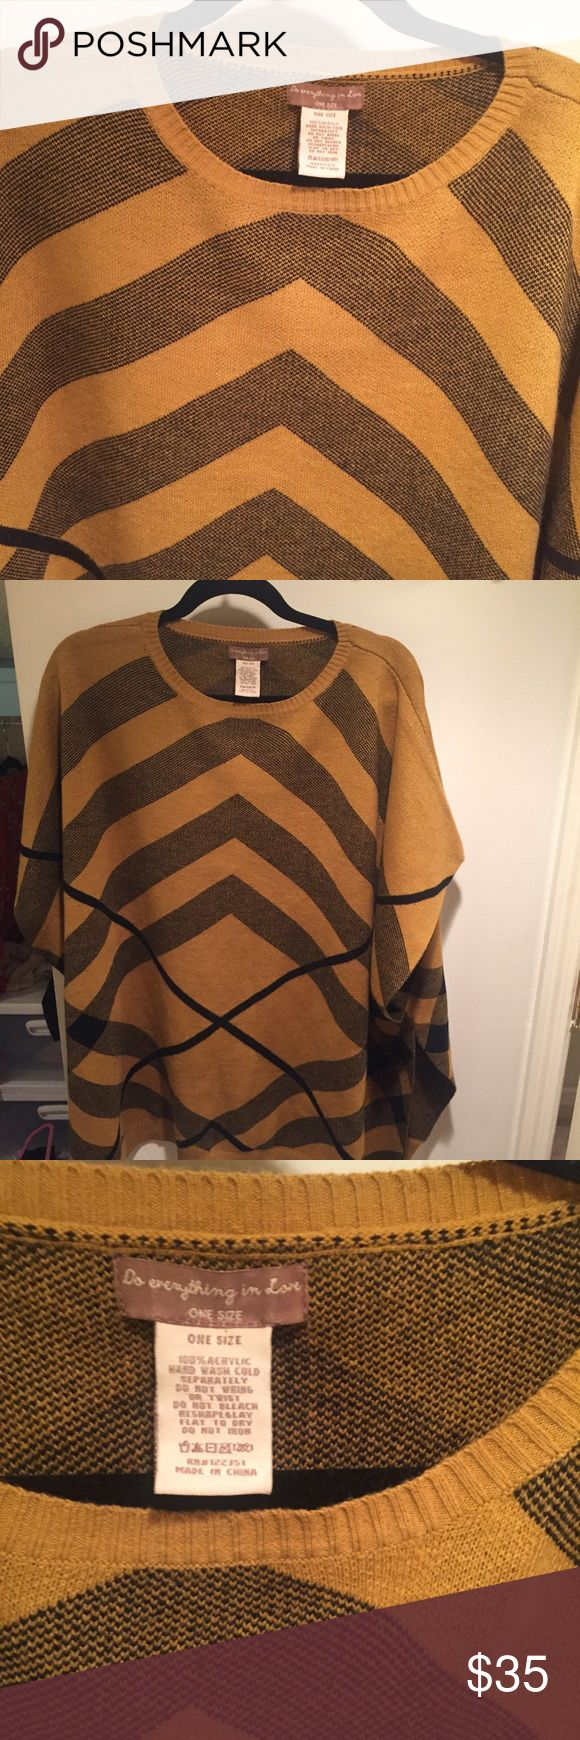 Fall Tunic Only worn once. Perfect fall tunic. So cute!! Do Everything In Love Sweaters Shrugs & Ponchos